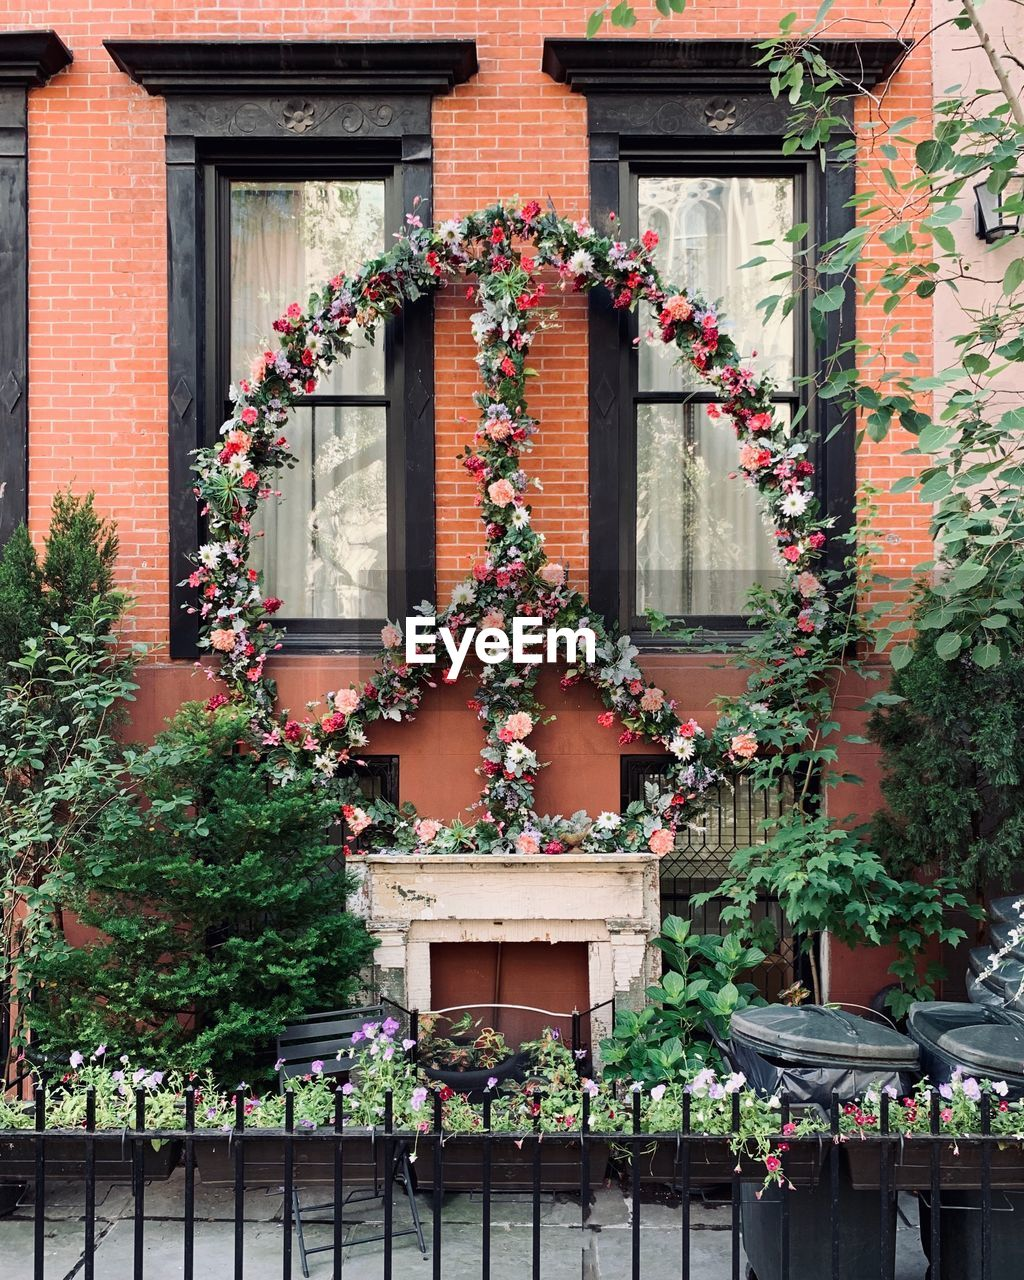 building exterior, built structure, architecture, plant, building, day, no people, flower, multi colored, flowering plant, nature, decoration, growth, window, outdoors, low angle view, house, potted plant, celebration, art and craft, flower pot